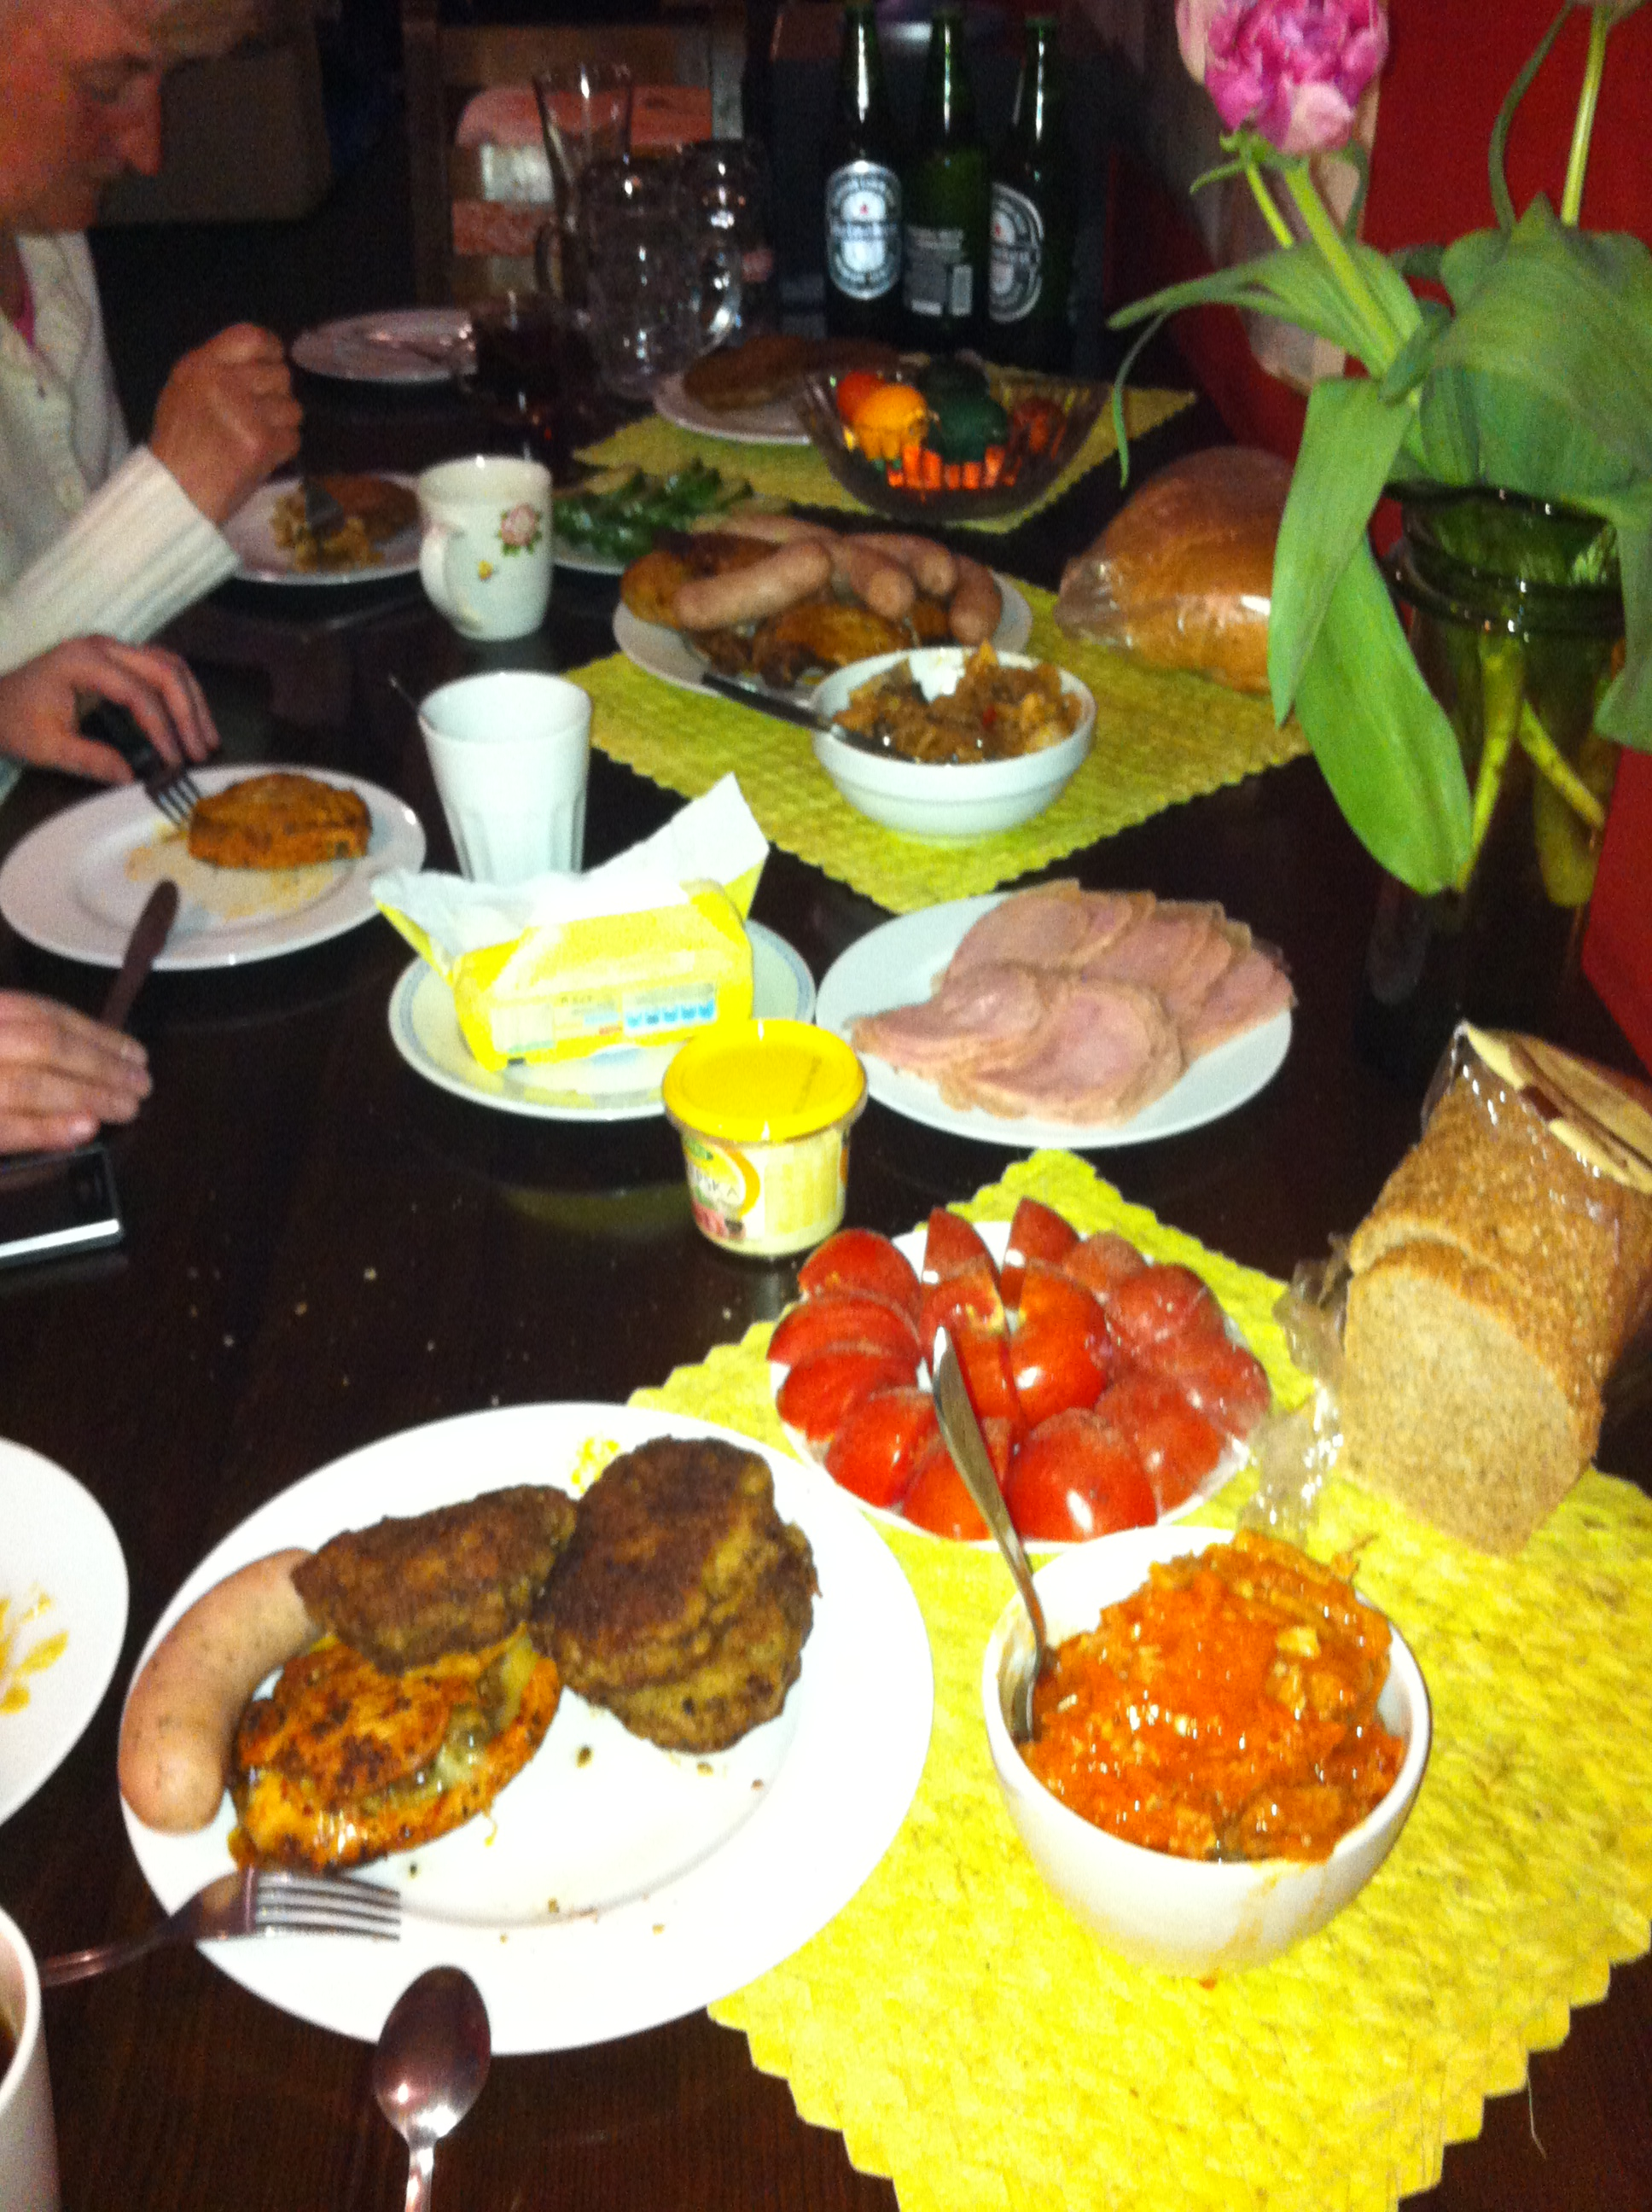 The Easter meal offered by hostel owner at Hostel Targ Rybny.